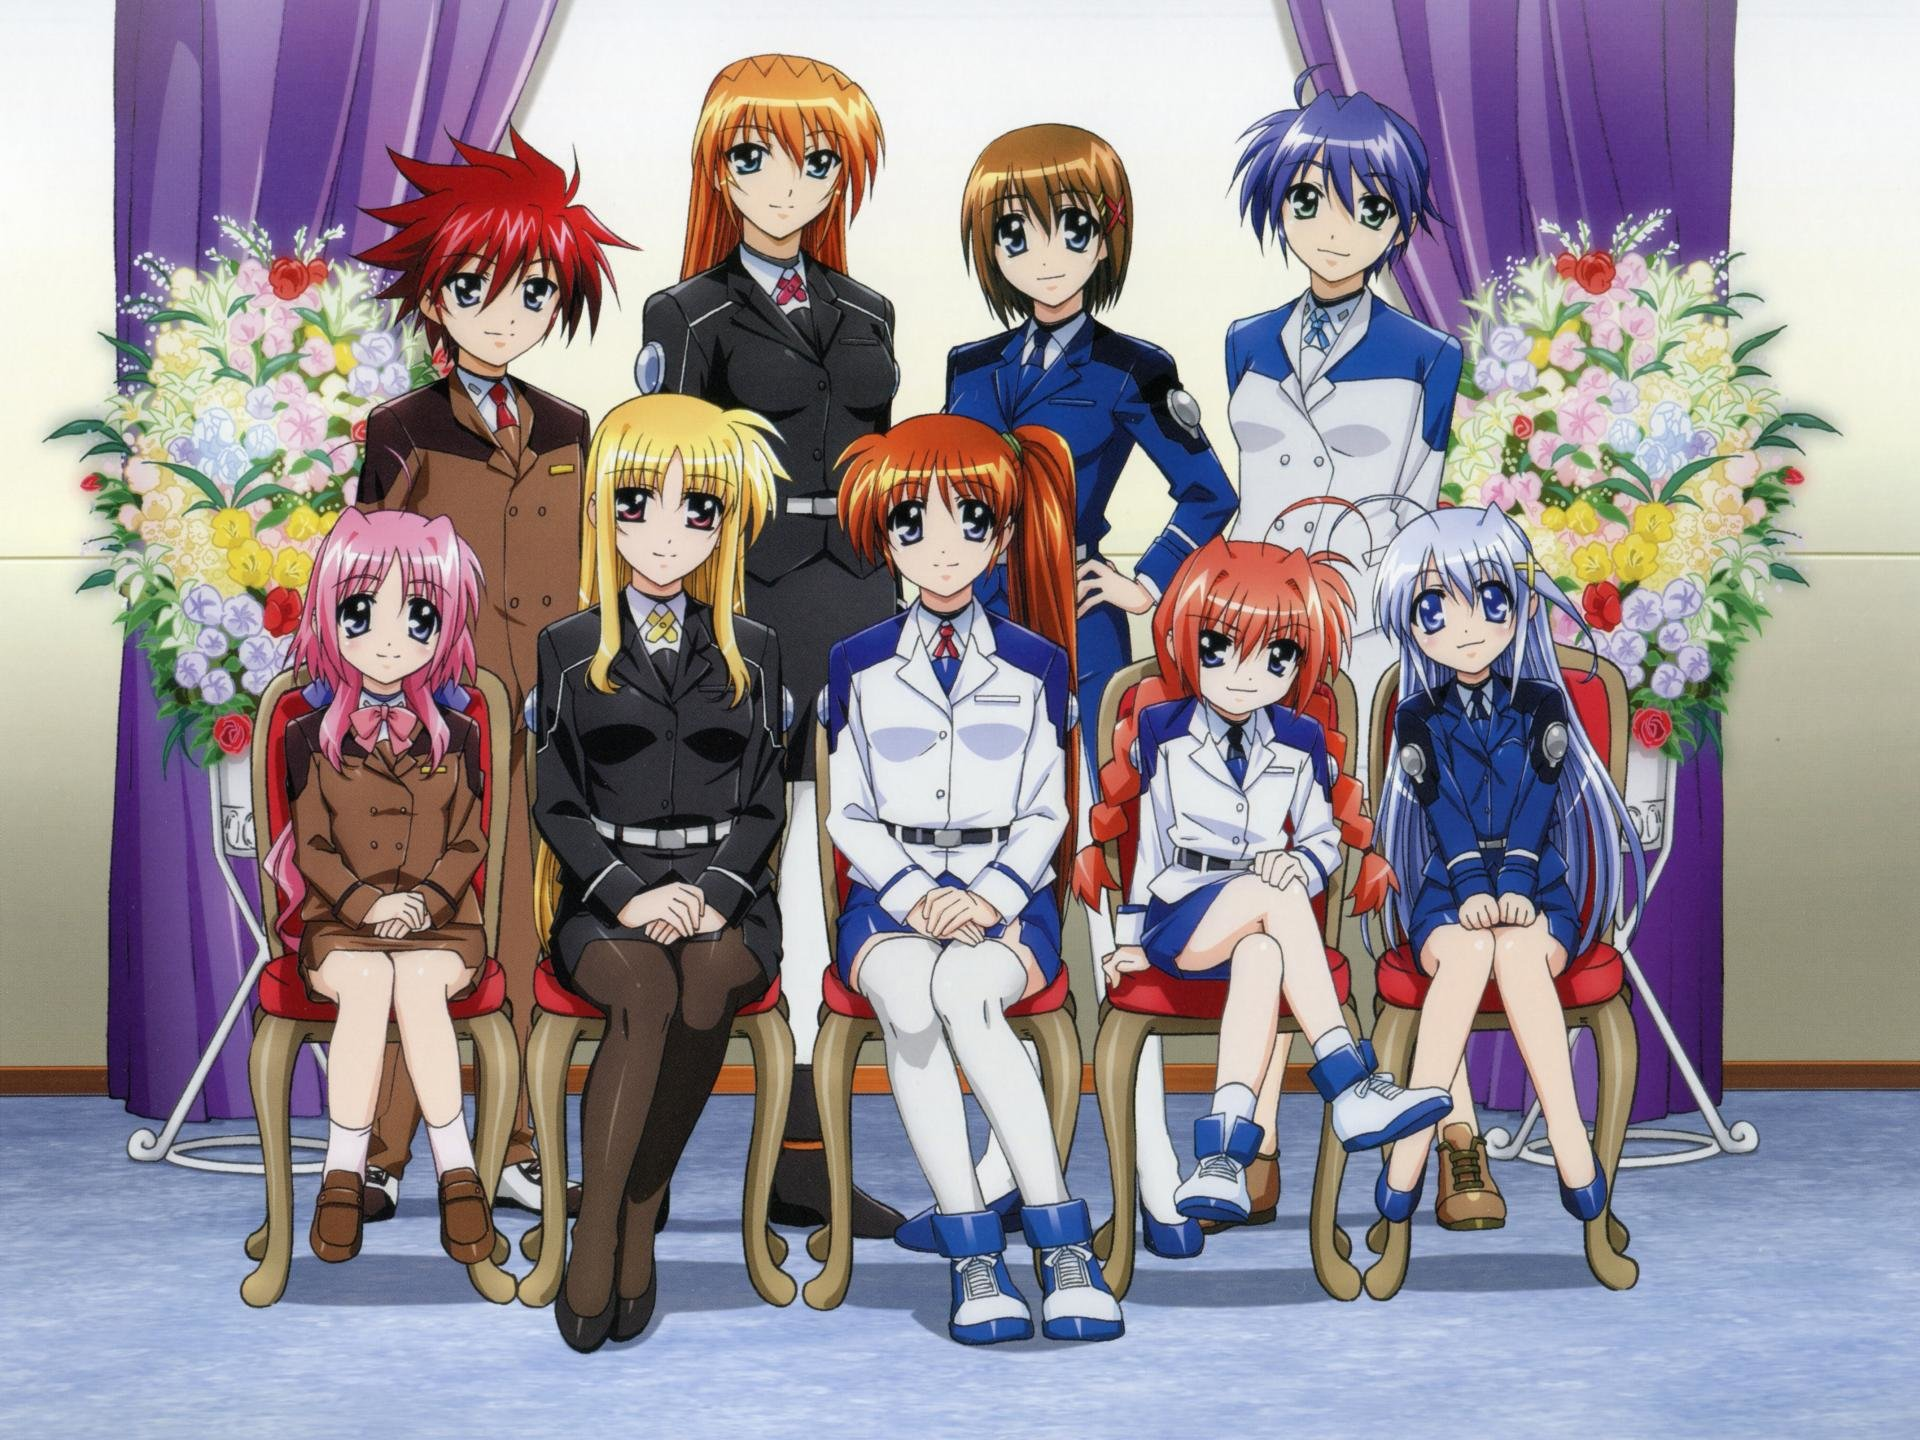 High resolution Magical Girl Lyrical Nanoha hd 1920x1440 background ID:297560 for desktop